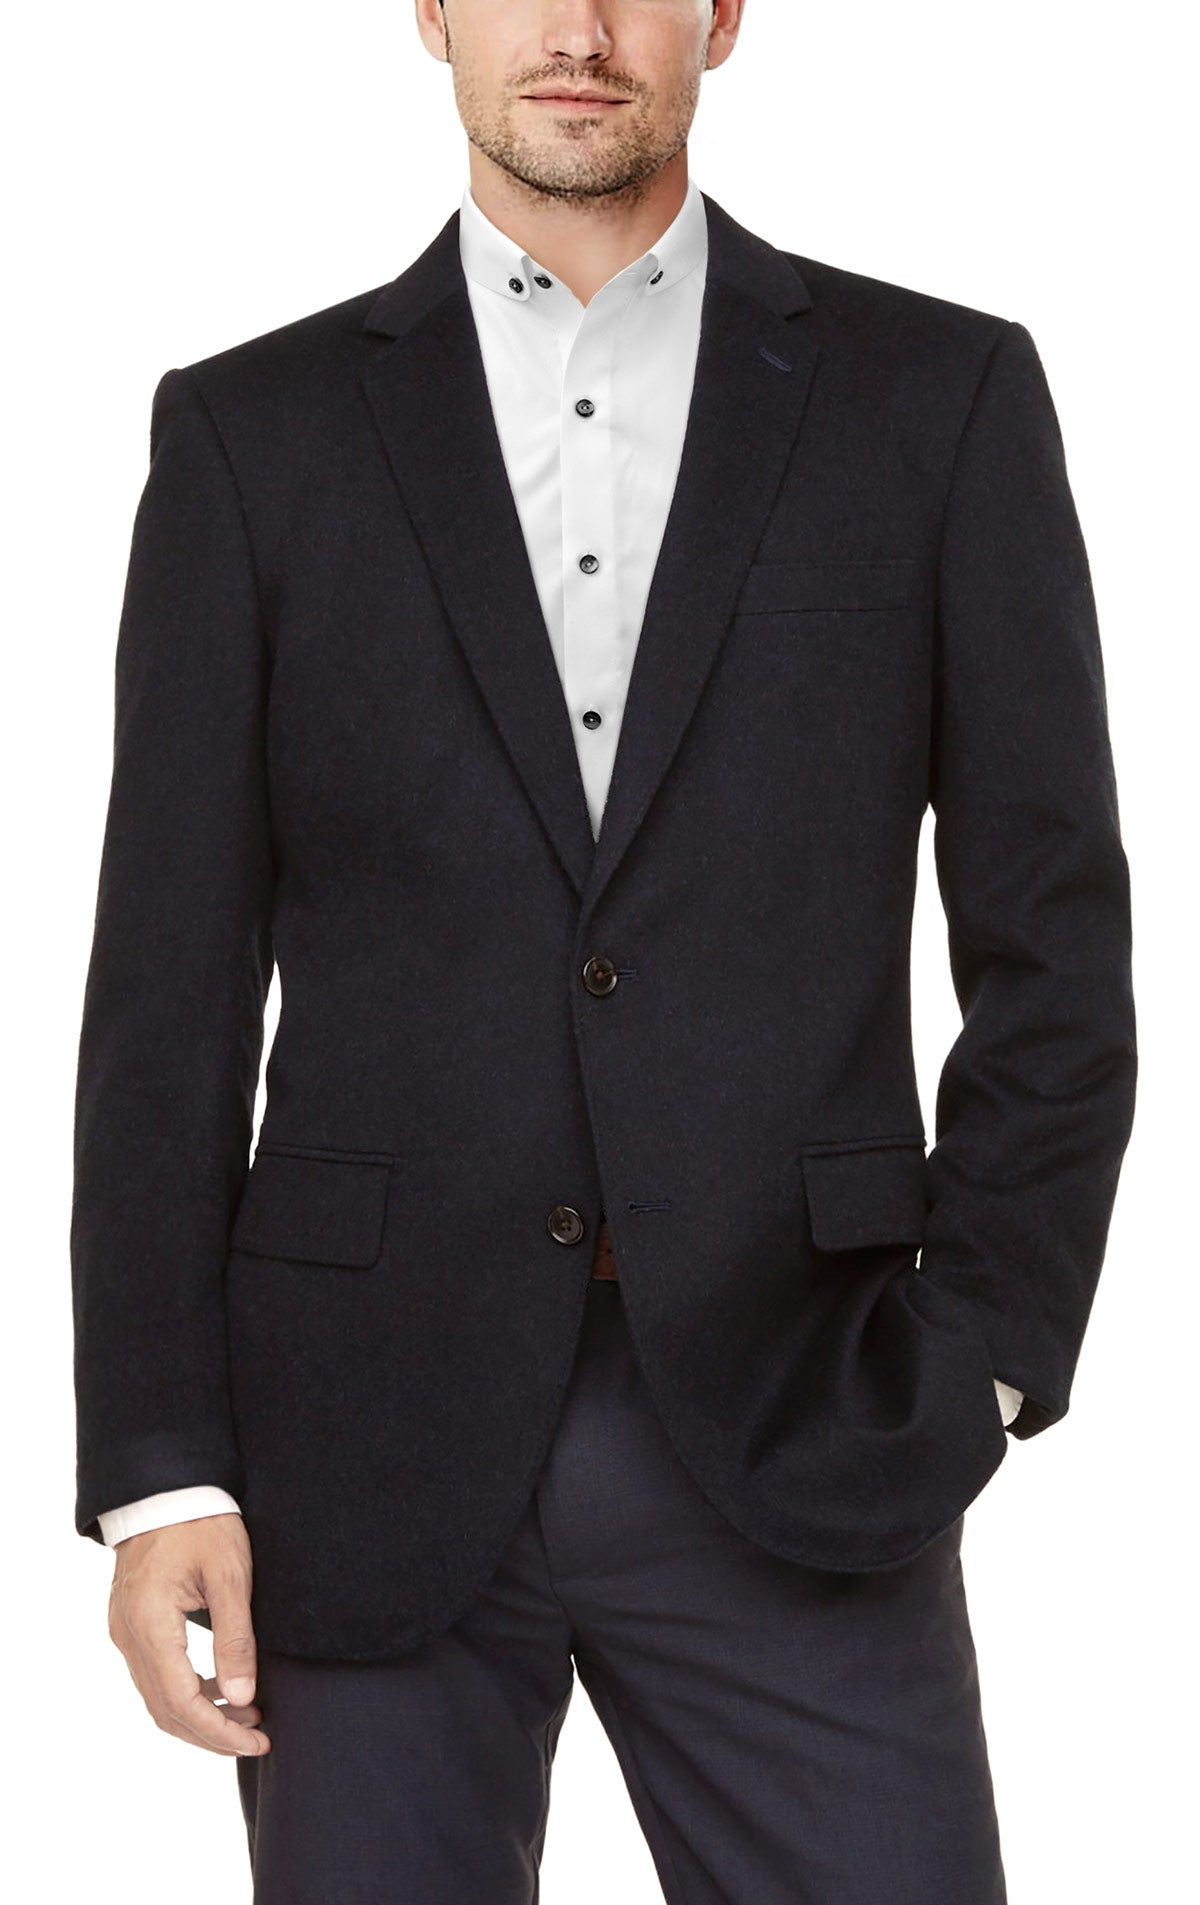 Business Casual Shirt with Blazer